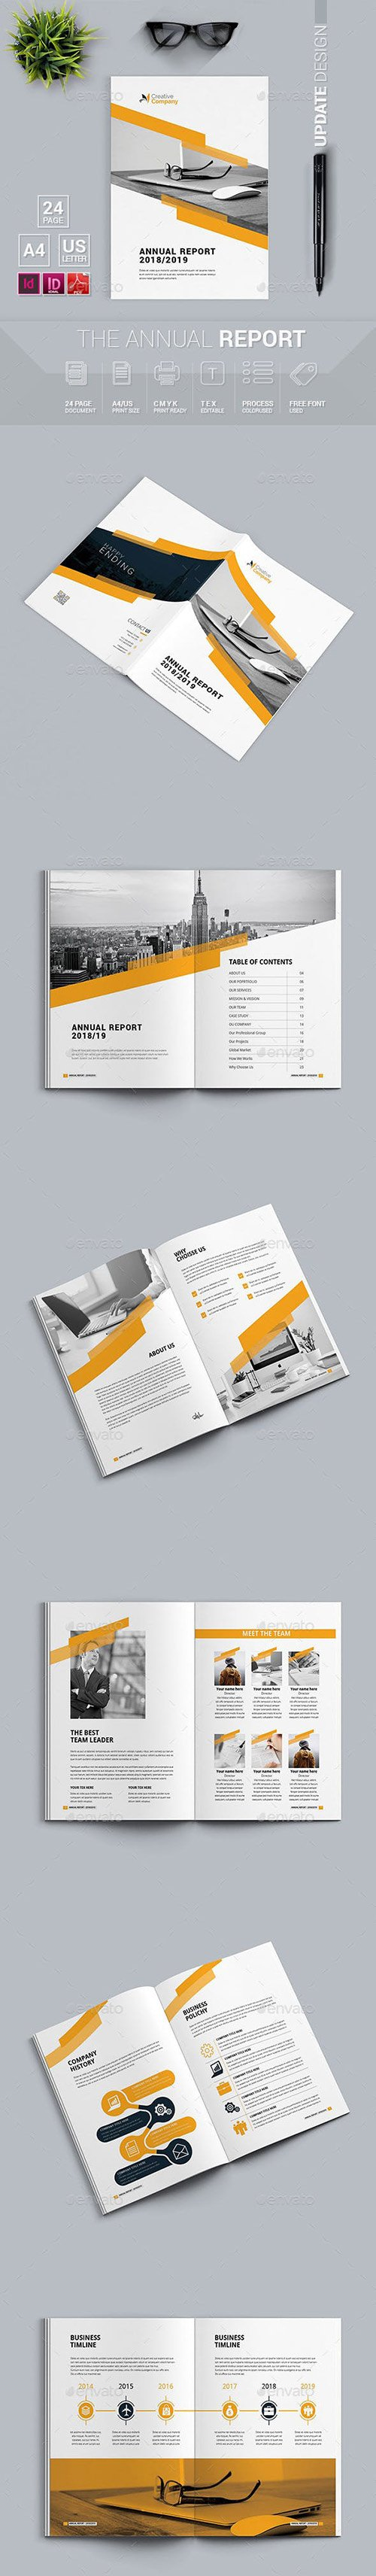 GraphicRiver - Annual Report 22659380